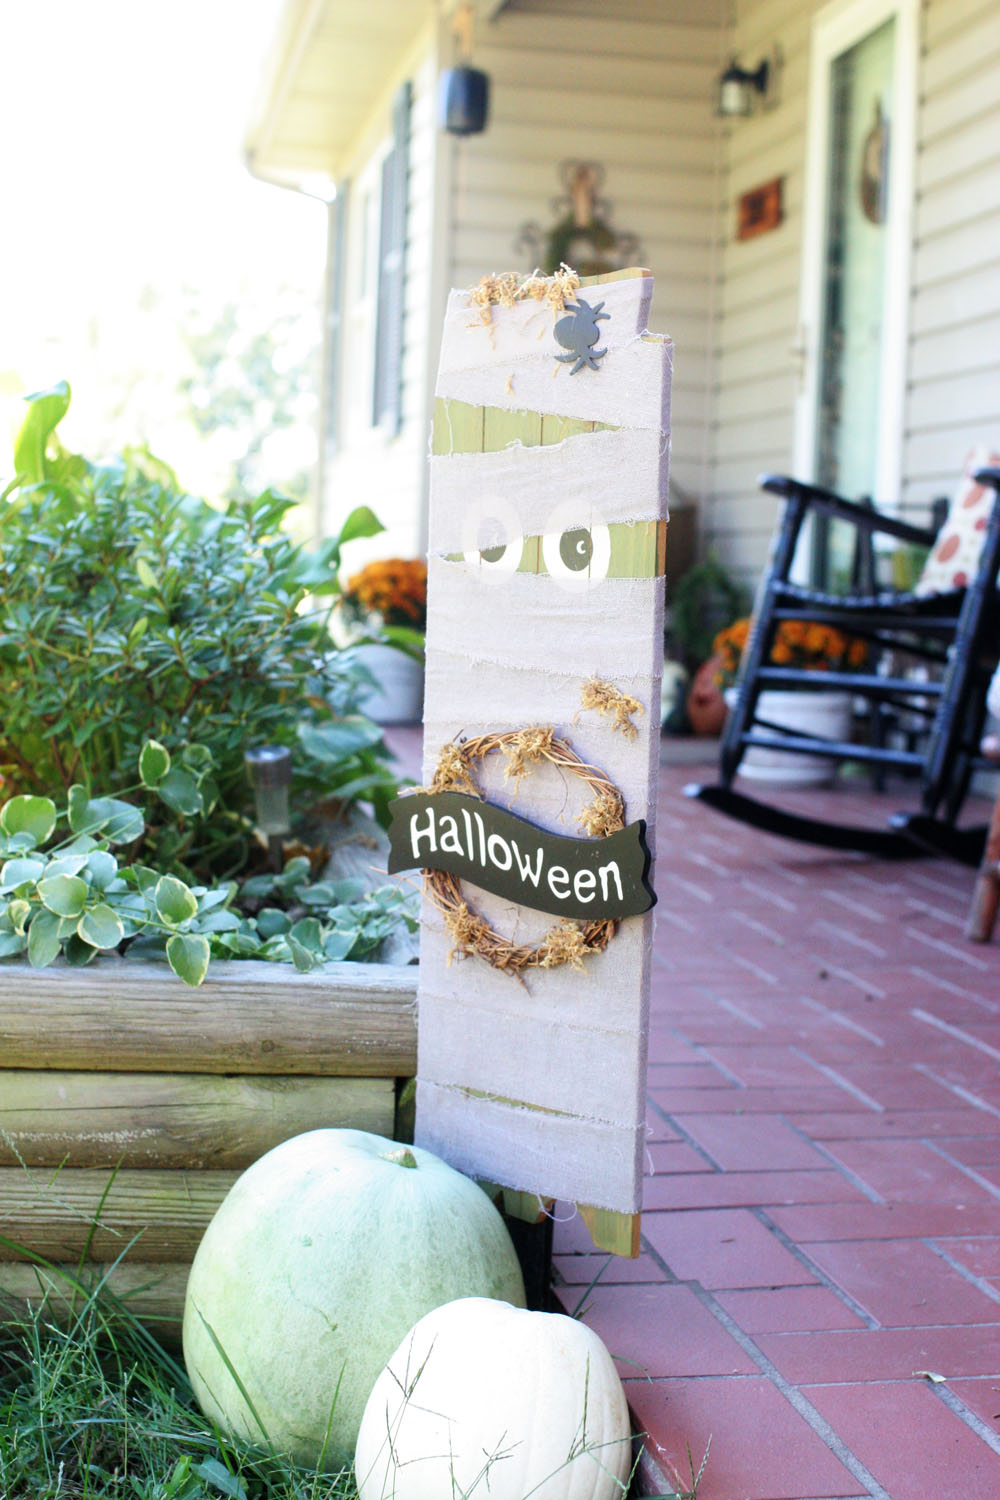 Cute pumpkin display and wooden mummy sign used as DIY outdoor Halloween decorations